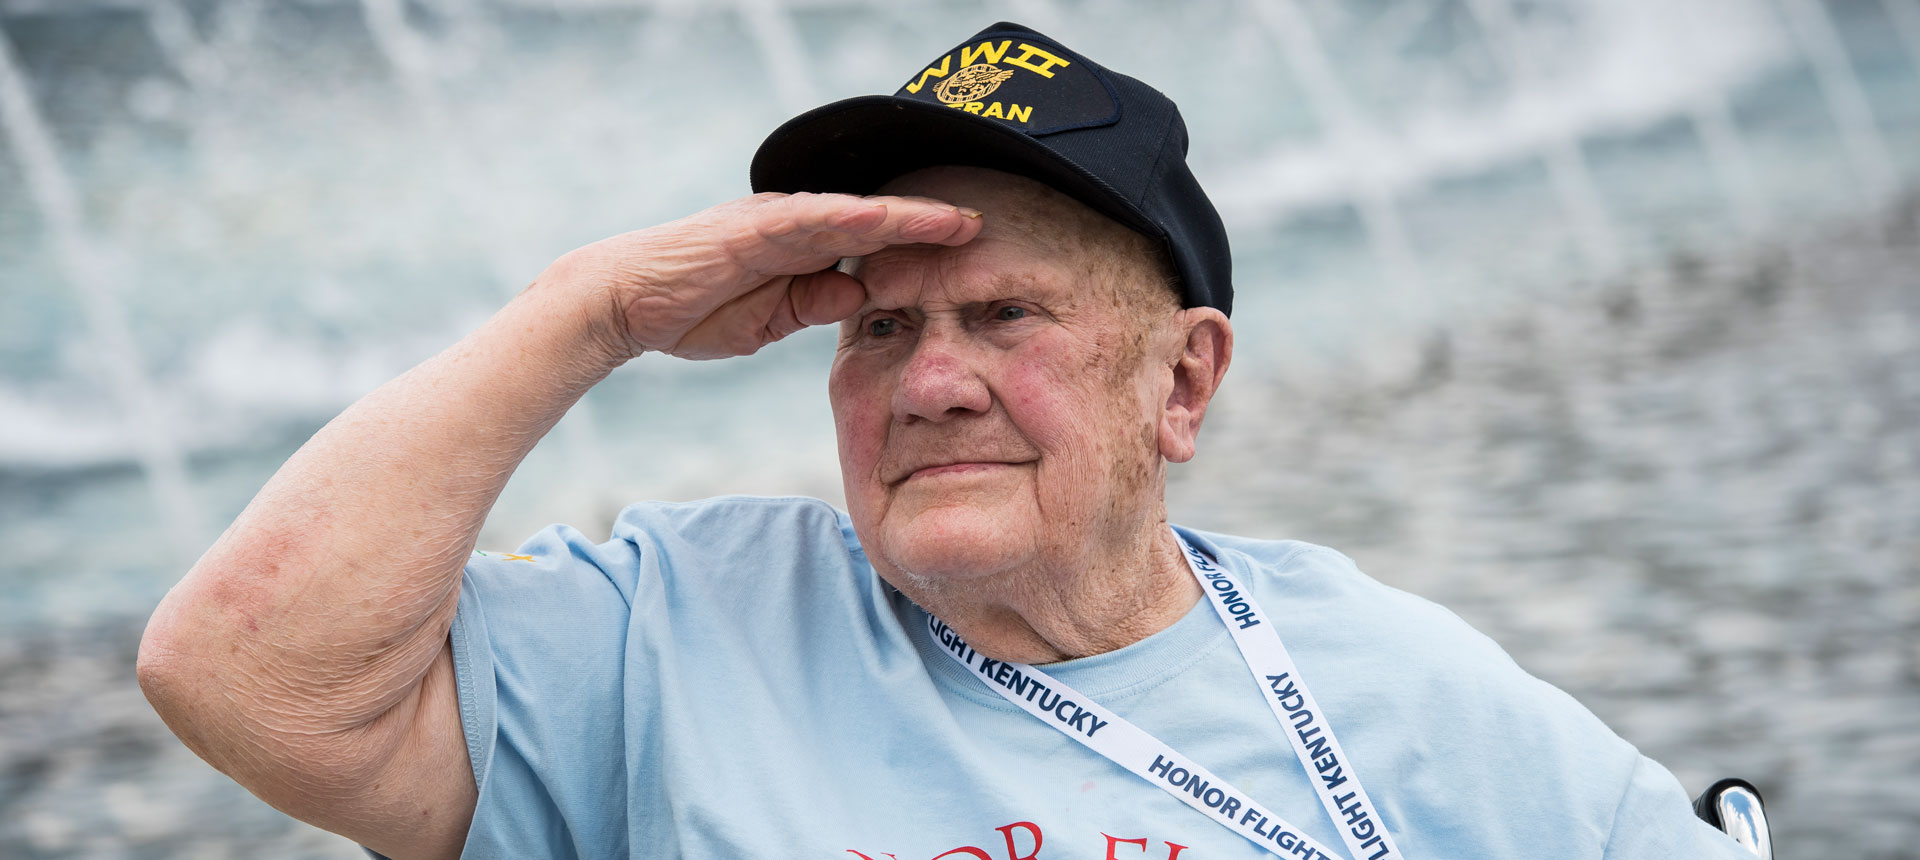 Honor Flight Vet salutes the flag